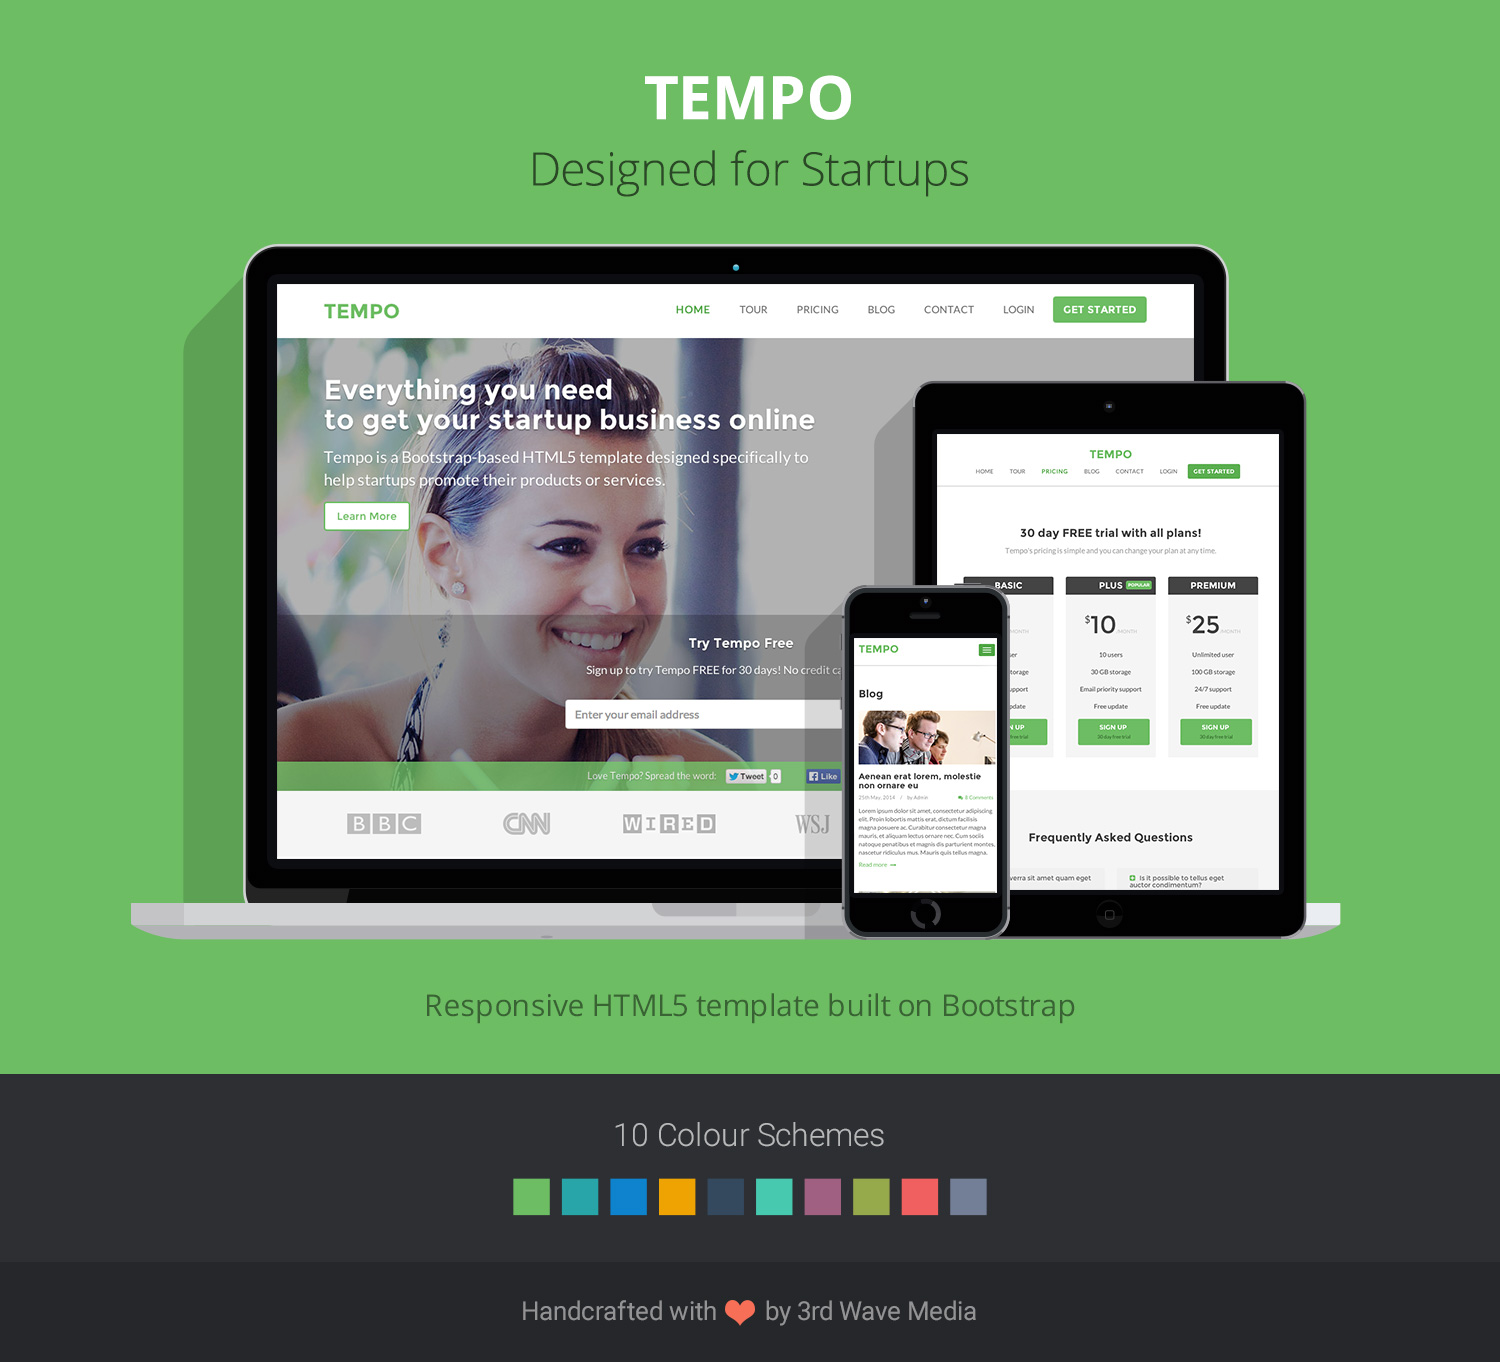 Tempo - Responsive HTML5 website template for startups